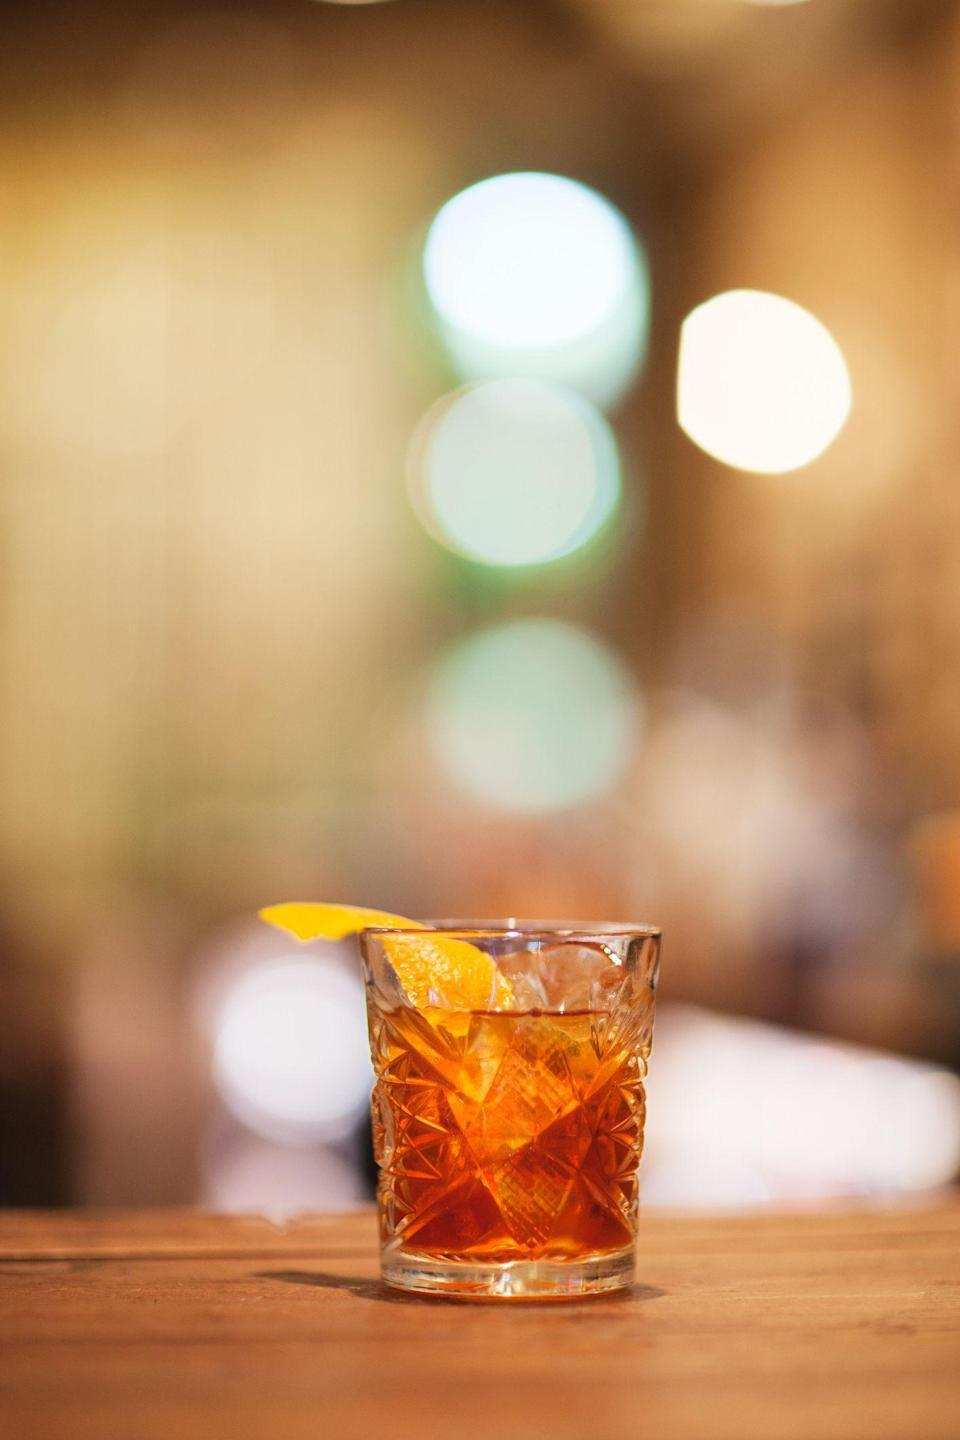 "<p>Once the dusty bottle forgotten at the back of the cabinet, rye whiskey is <a href=""https://www.townandcountrymag.com/leisure/drinks/a26953419/rye-whiskey-history-recipes/"" rel=""nofollow noopener"" target=""_blank"" data-ylk=""slk:enjoying a resurgence"" class=""link rapid-noclick-resp"">enjoying a resurgence</a> nowadays. <a href=""https://www.townandcountrymag.com/leisure/drinks/g34110355/best-rye-whiskey-brands/"" rel=""nofollow noopener"" target=""_blank"" data-ylk=""slk:Made from rye grain"" class=""link rapid-noclick-resp"">Made from rye grain</a> in a similar style to bourbon, rye brings a spiciness that's one part pepper, one part baking spices, and 100% perfect for cool weather cocktails. From <a href=""https://www.townandcountrymag.com/leisure/drinks/g13092298/popular-bar-drinks-to-order/"" rel=""nofollow noopener"" target=""_blank"" data-ylk=""slk:classics"" class=""link rapid-noclick-resp"">classics</a> like the Manhattan or sazerac to more modern riffs, there are plenty of ways to enjoy this mixing-friendly spirit. Need some inspiration? Here are our favorite ways to shake things up with rye. </p>"